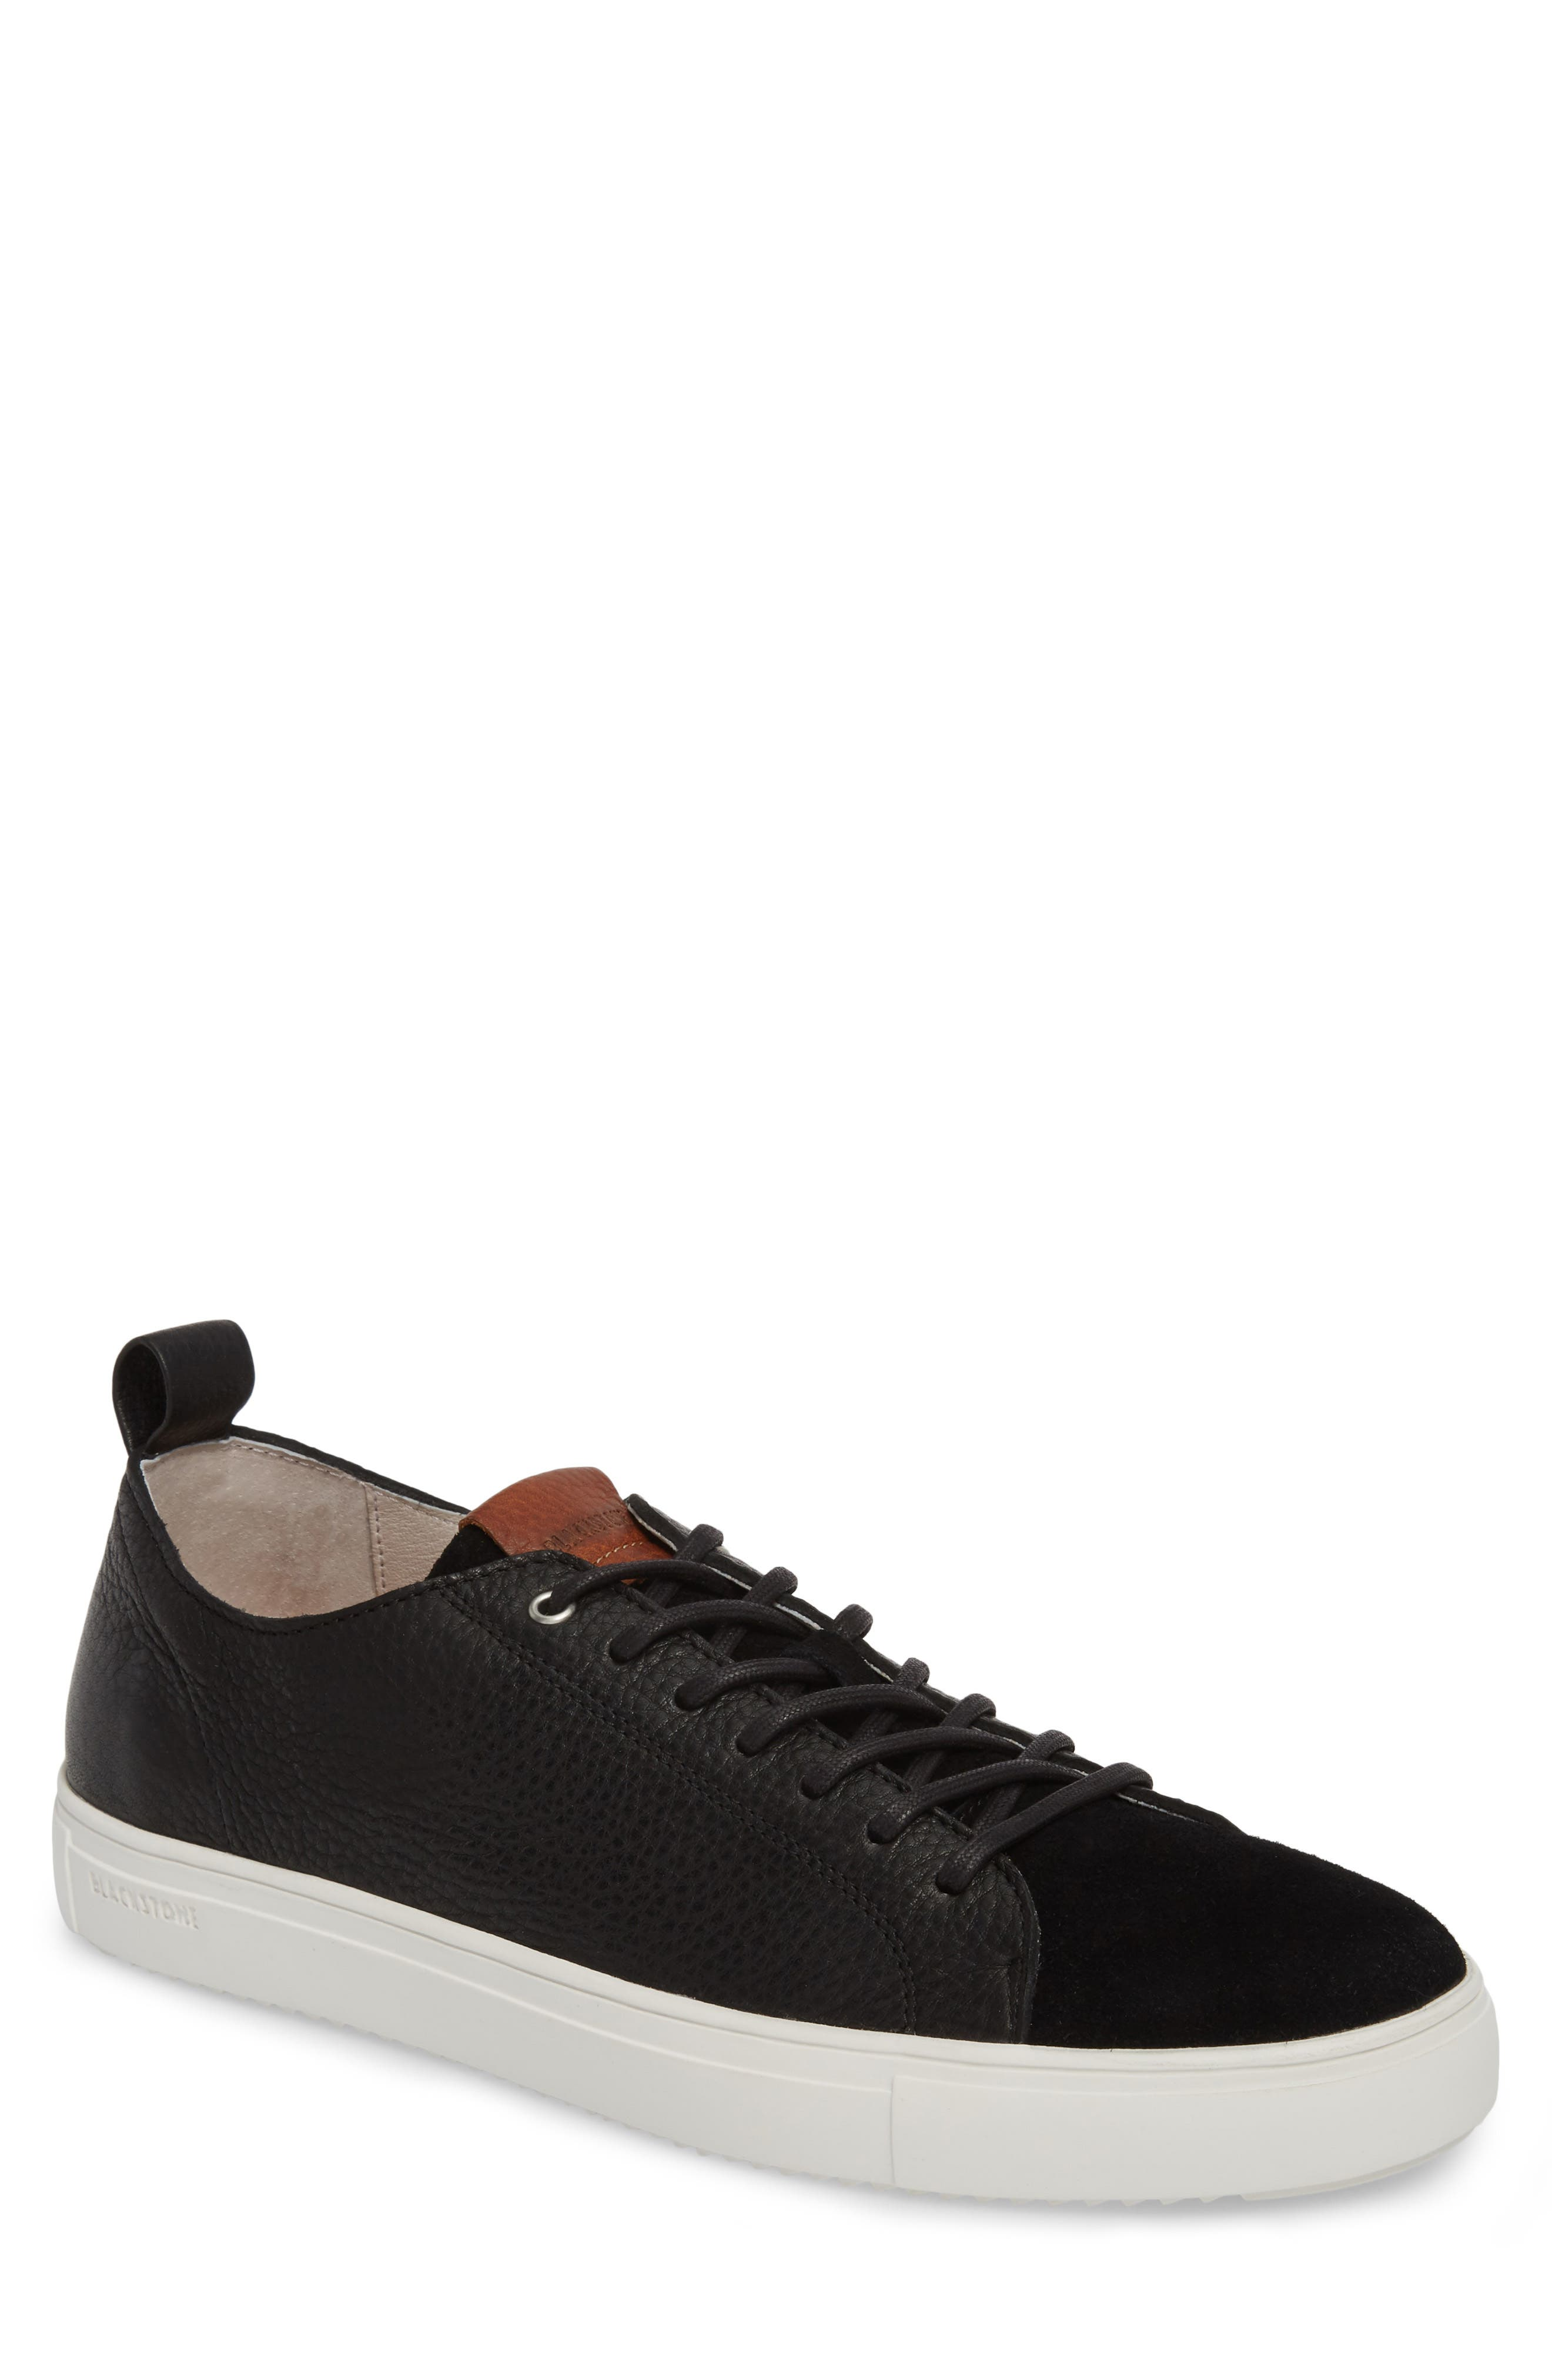 PM46 Low Top Sneaker,                             Main thumbnail 1, color,                             BLACK LEATHER